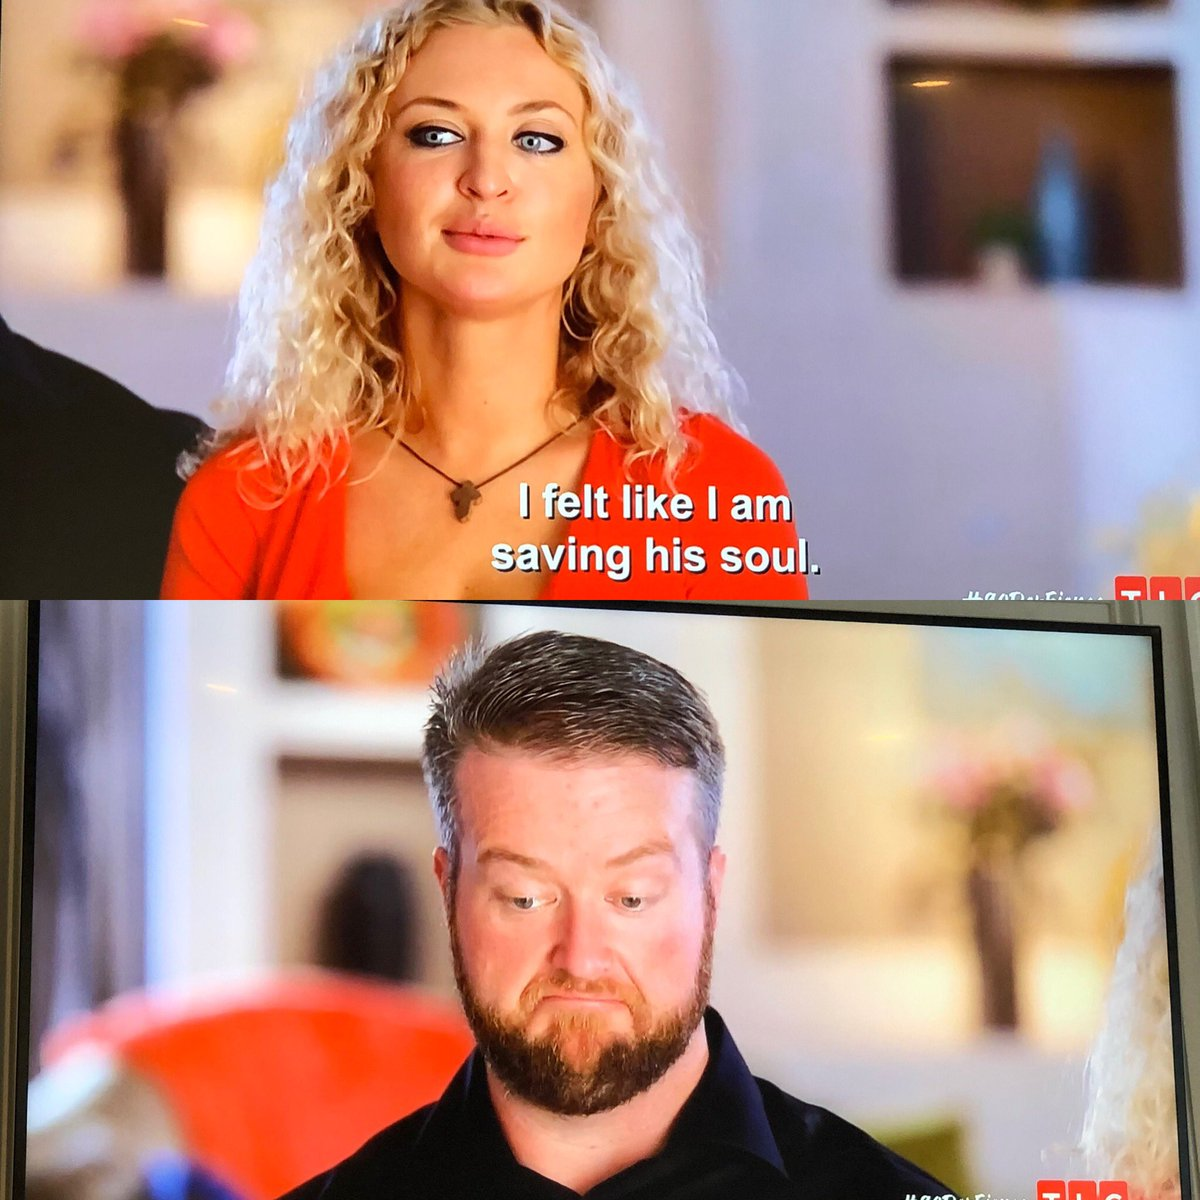 When you find out your fiancé is a missionary and you're Africa #420dayfiance #90dayfiance #jesus #saveyoursoulfirst #religionmemes pic.twitter.com/qEBqty3cbO